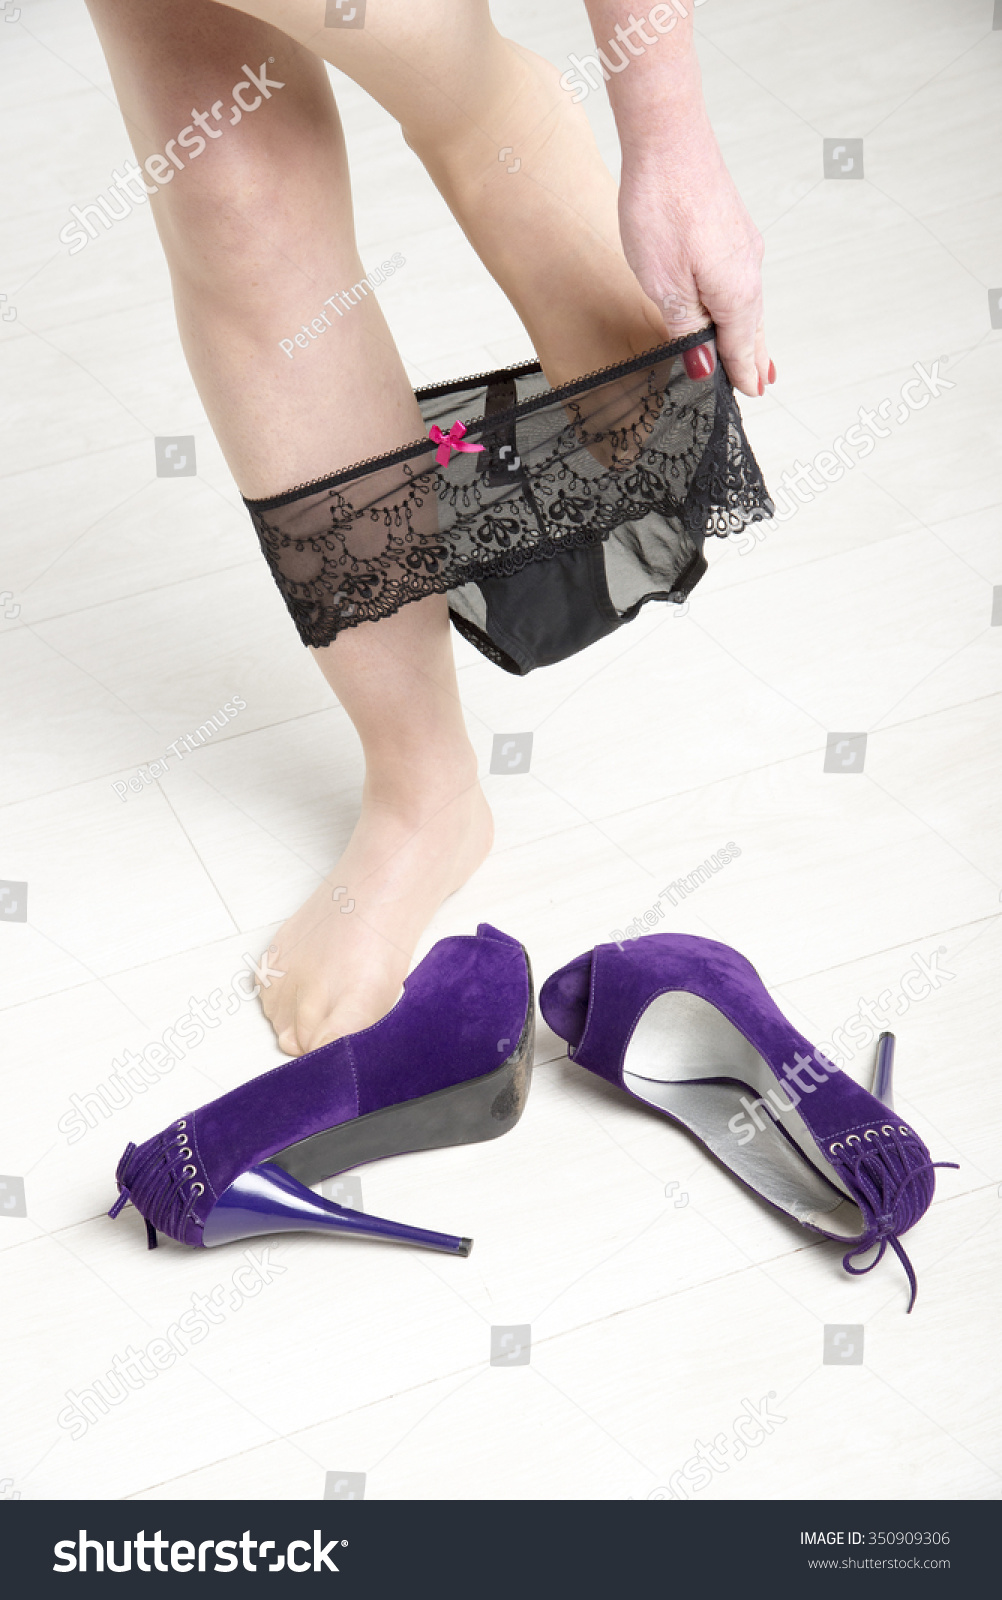 Women Removing Shoes